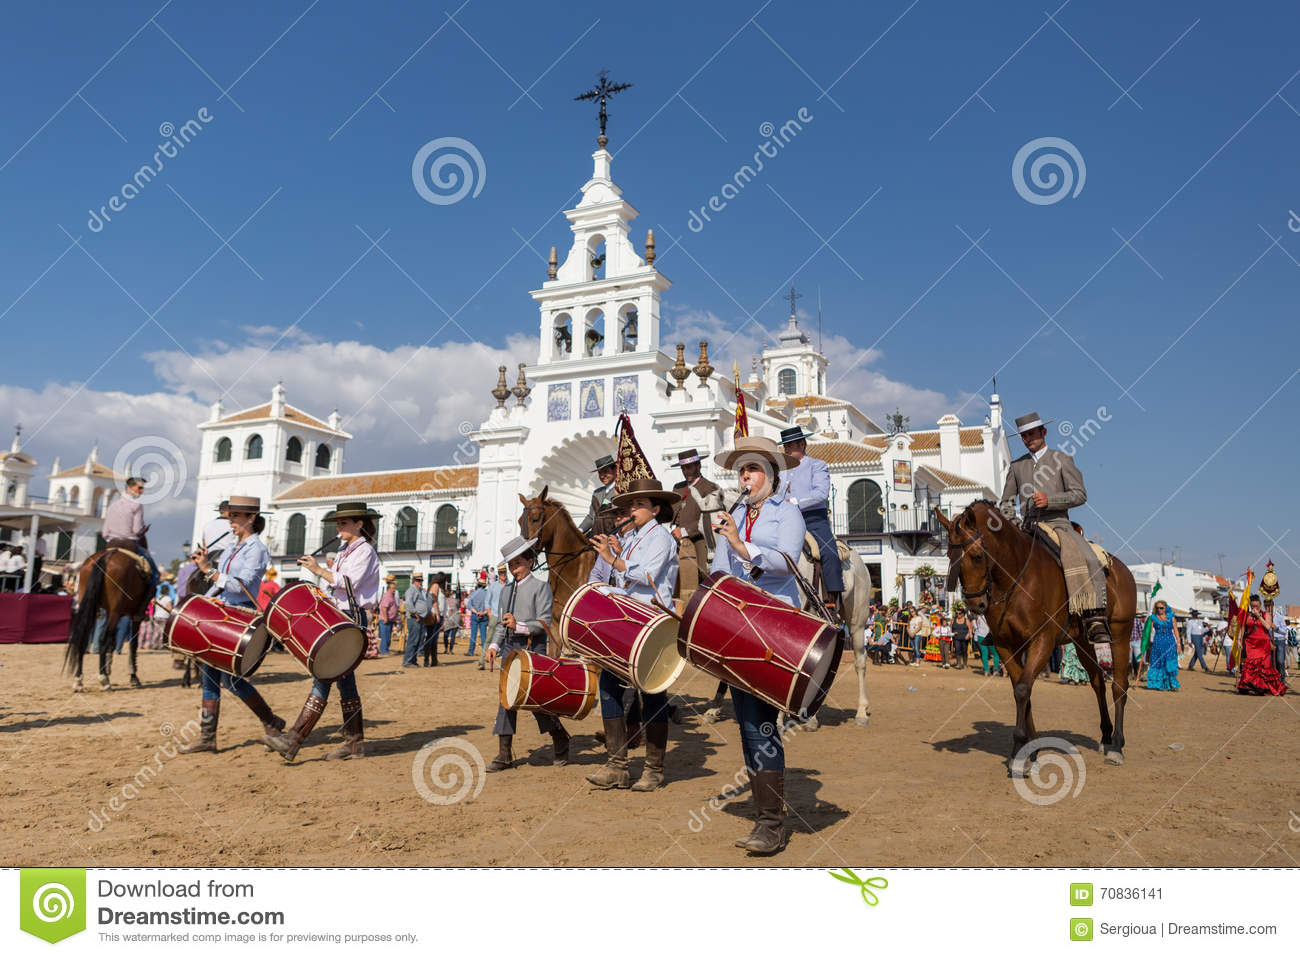 El ROCIO, ANDALUCIA, SPAIN - MAY 22: Romeria after visiting Sanctuary goes to village.